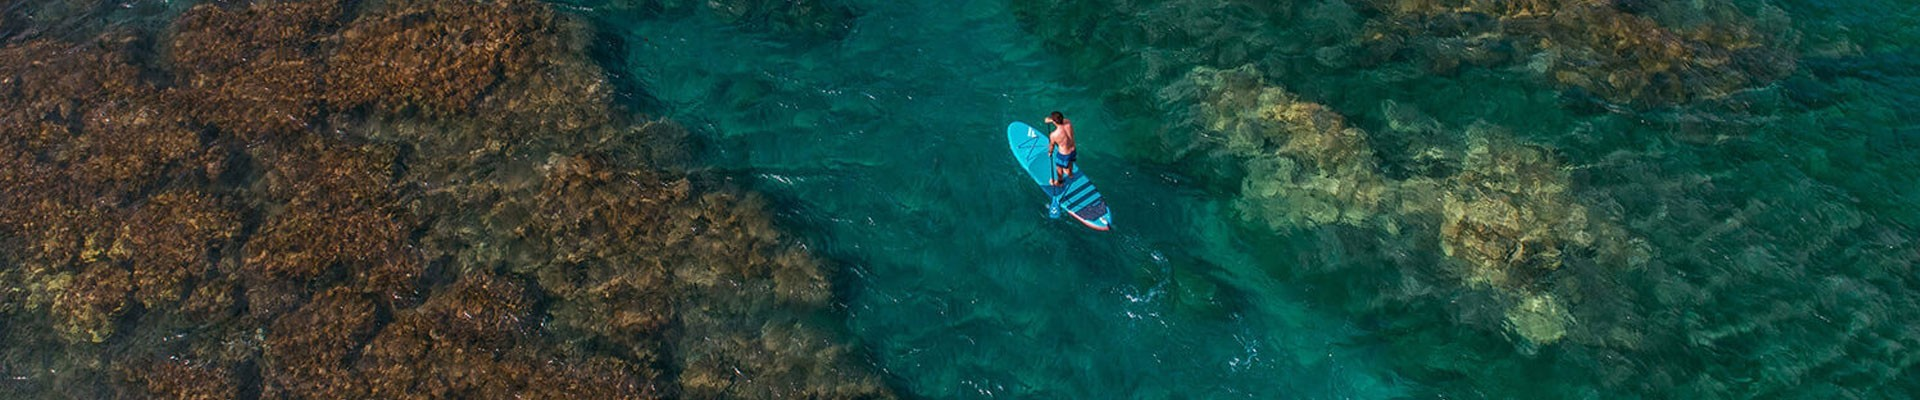 Stand Up Paddle gonflable Allround - SwellAddiction